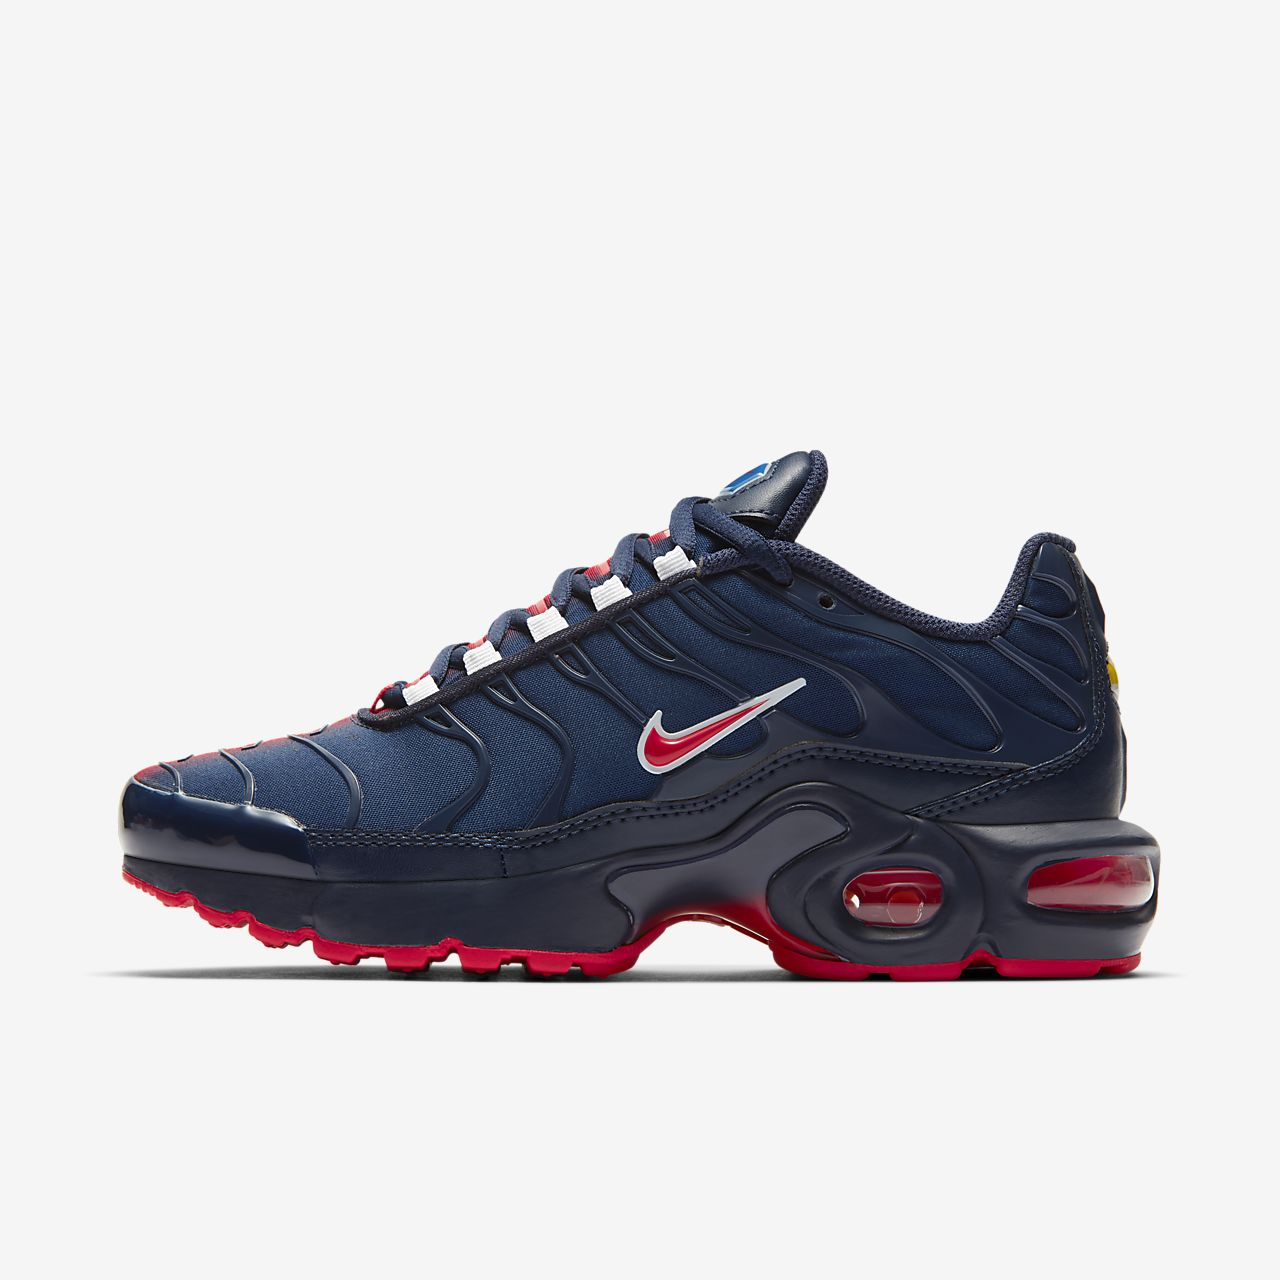 nike air max plus tn bianche